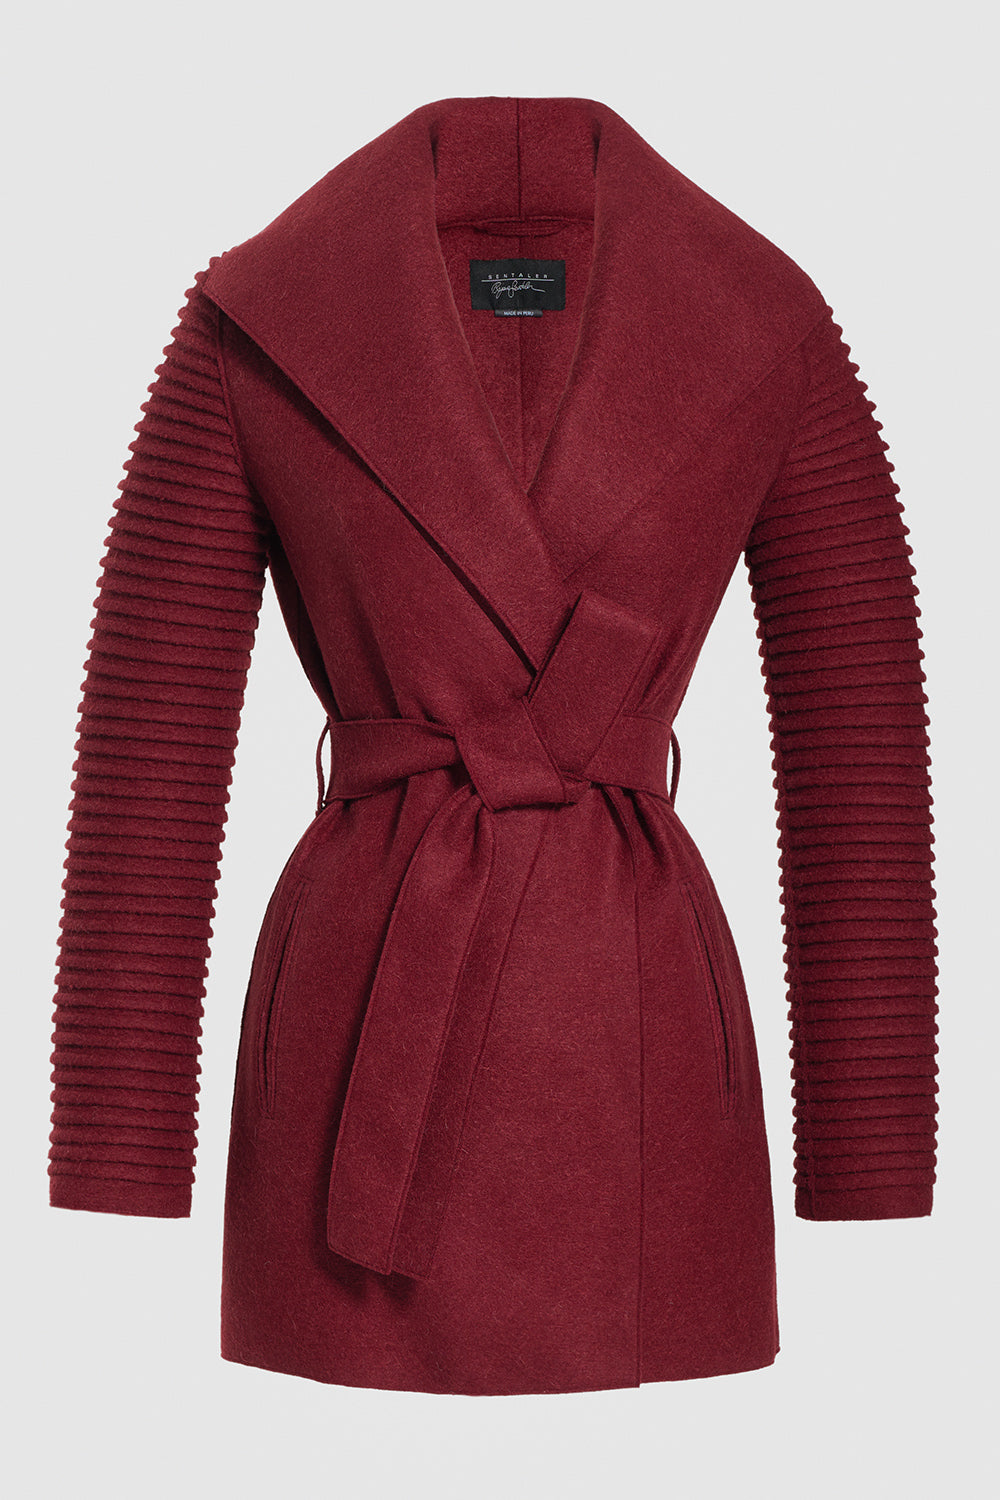 Sentaler Wrap Coat with Ribbed Sleeves featured in Superfine Alpaca and available in Wine. Seen off model.